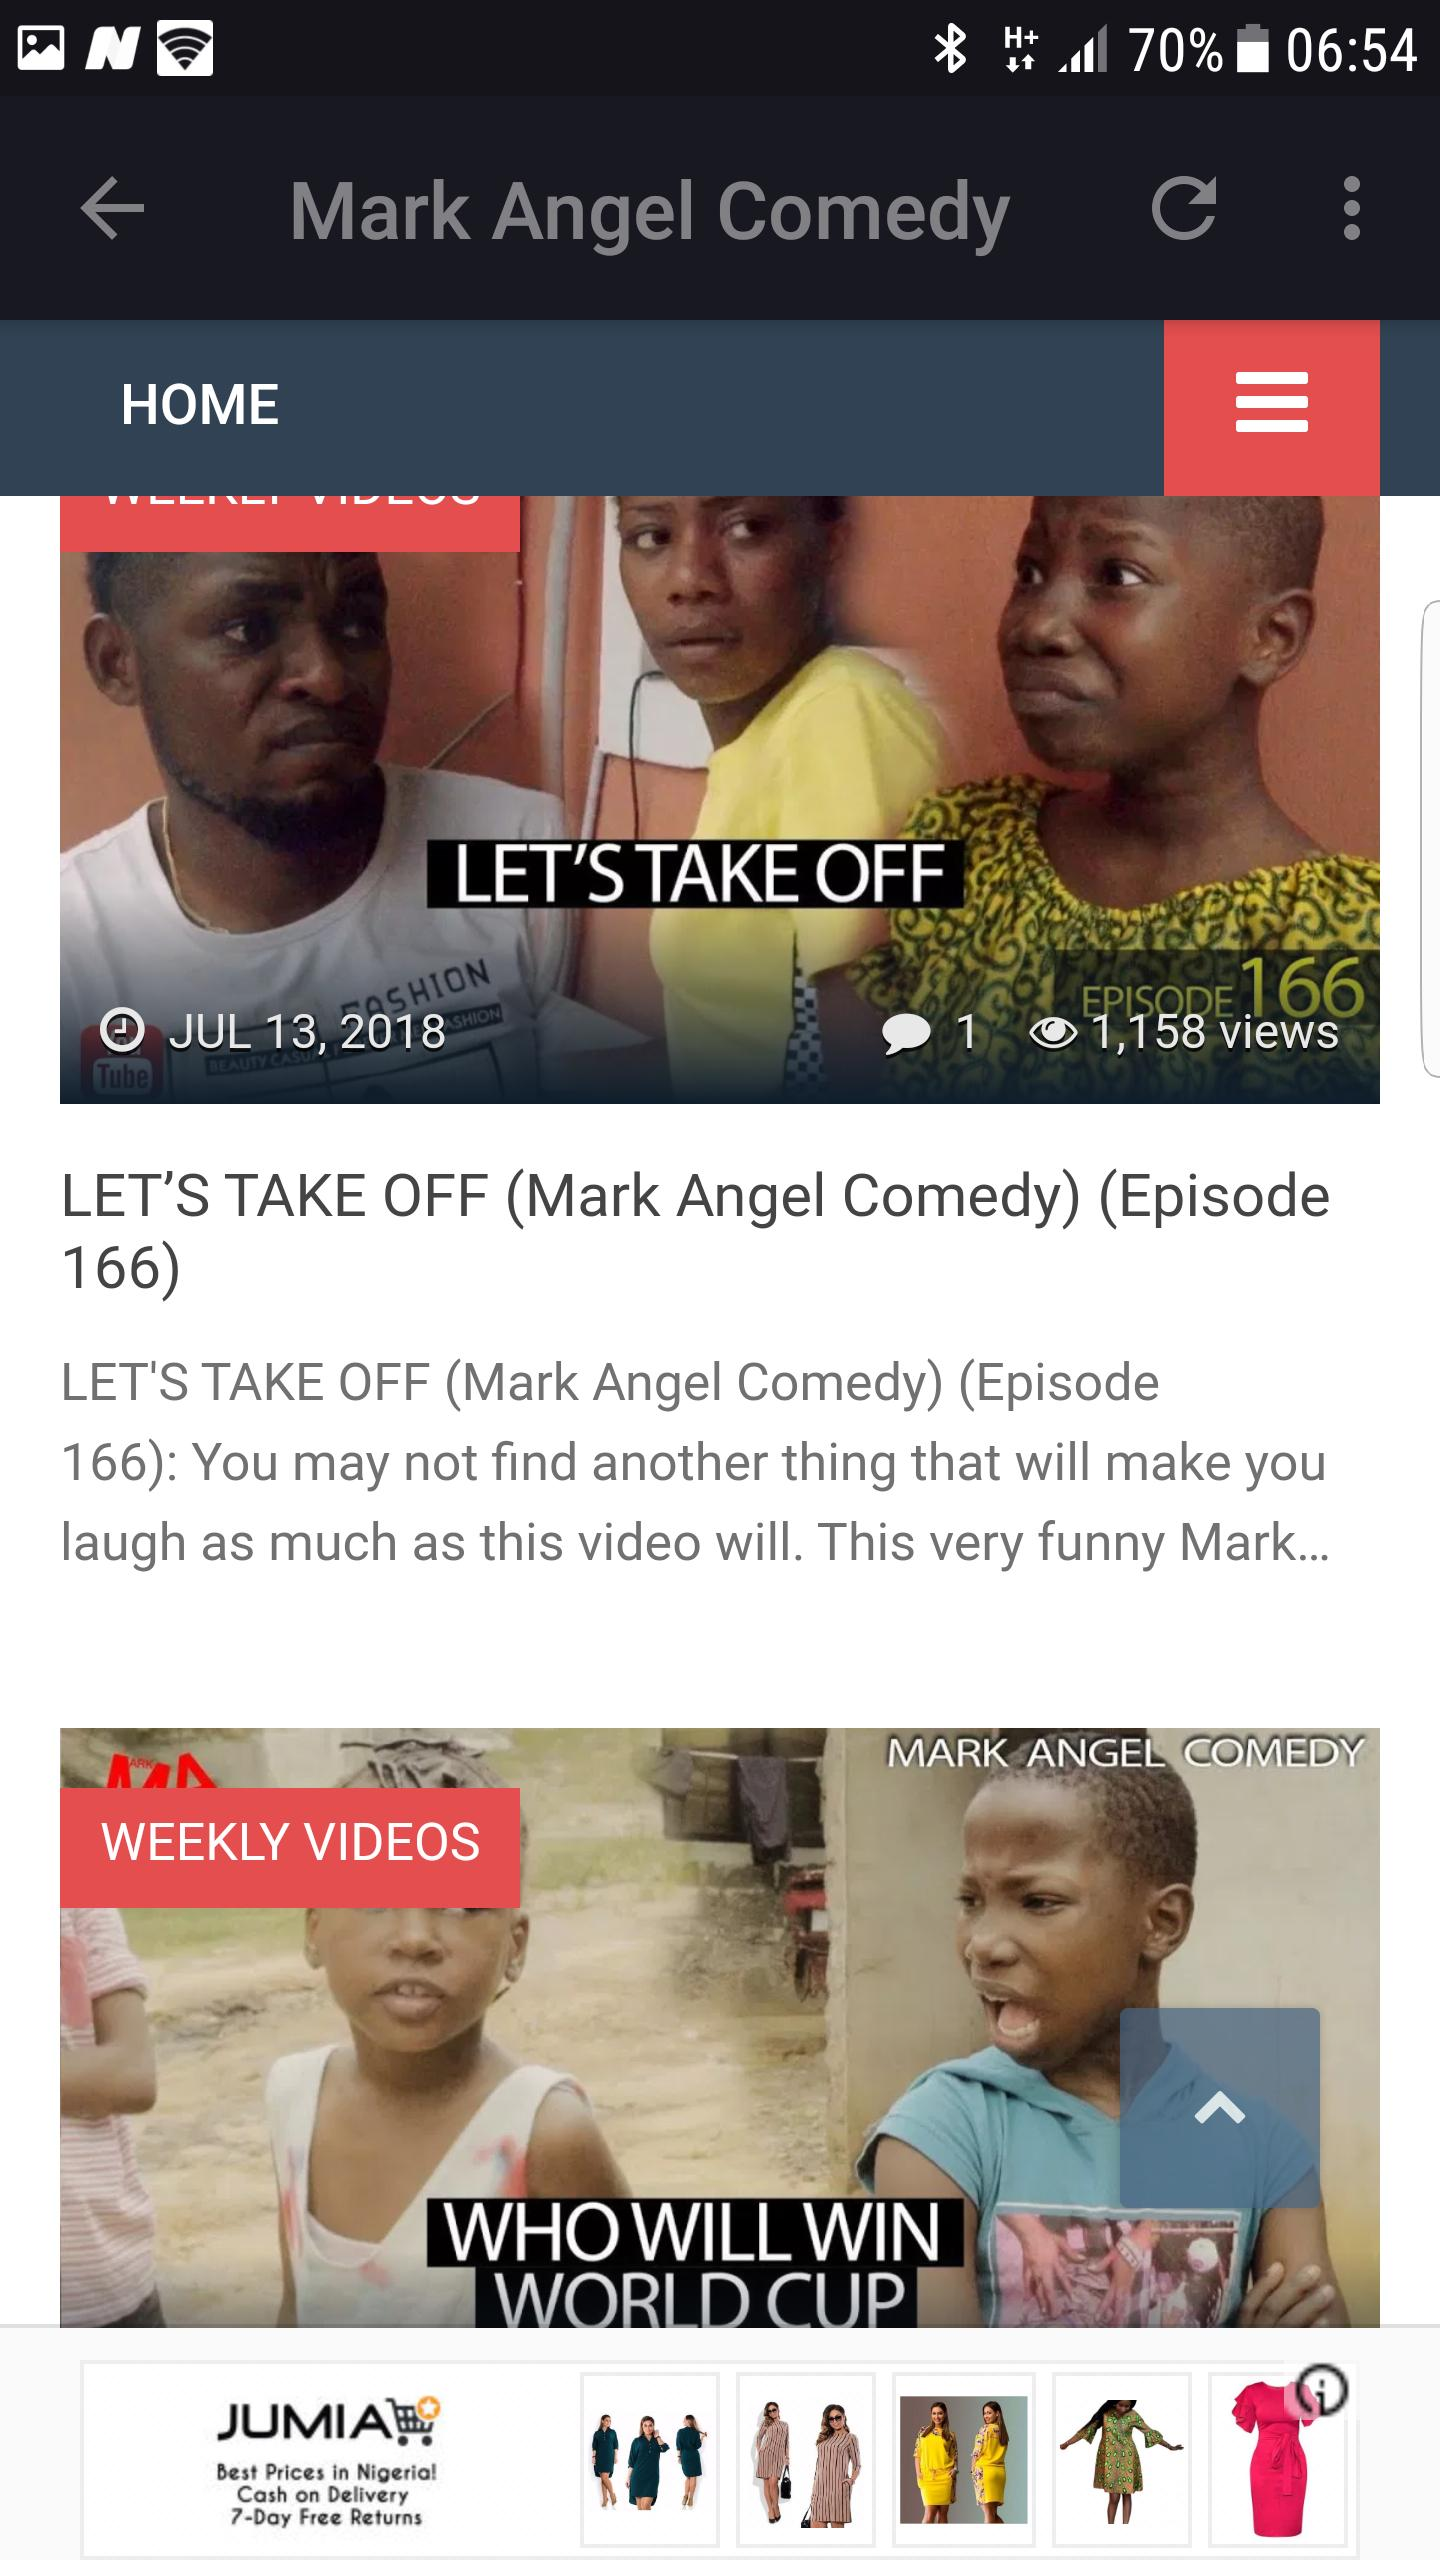 Nigeria Comedy Skits App for Android - APK Download